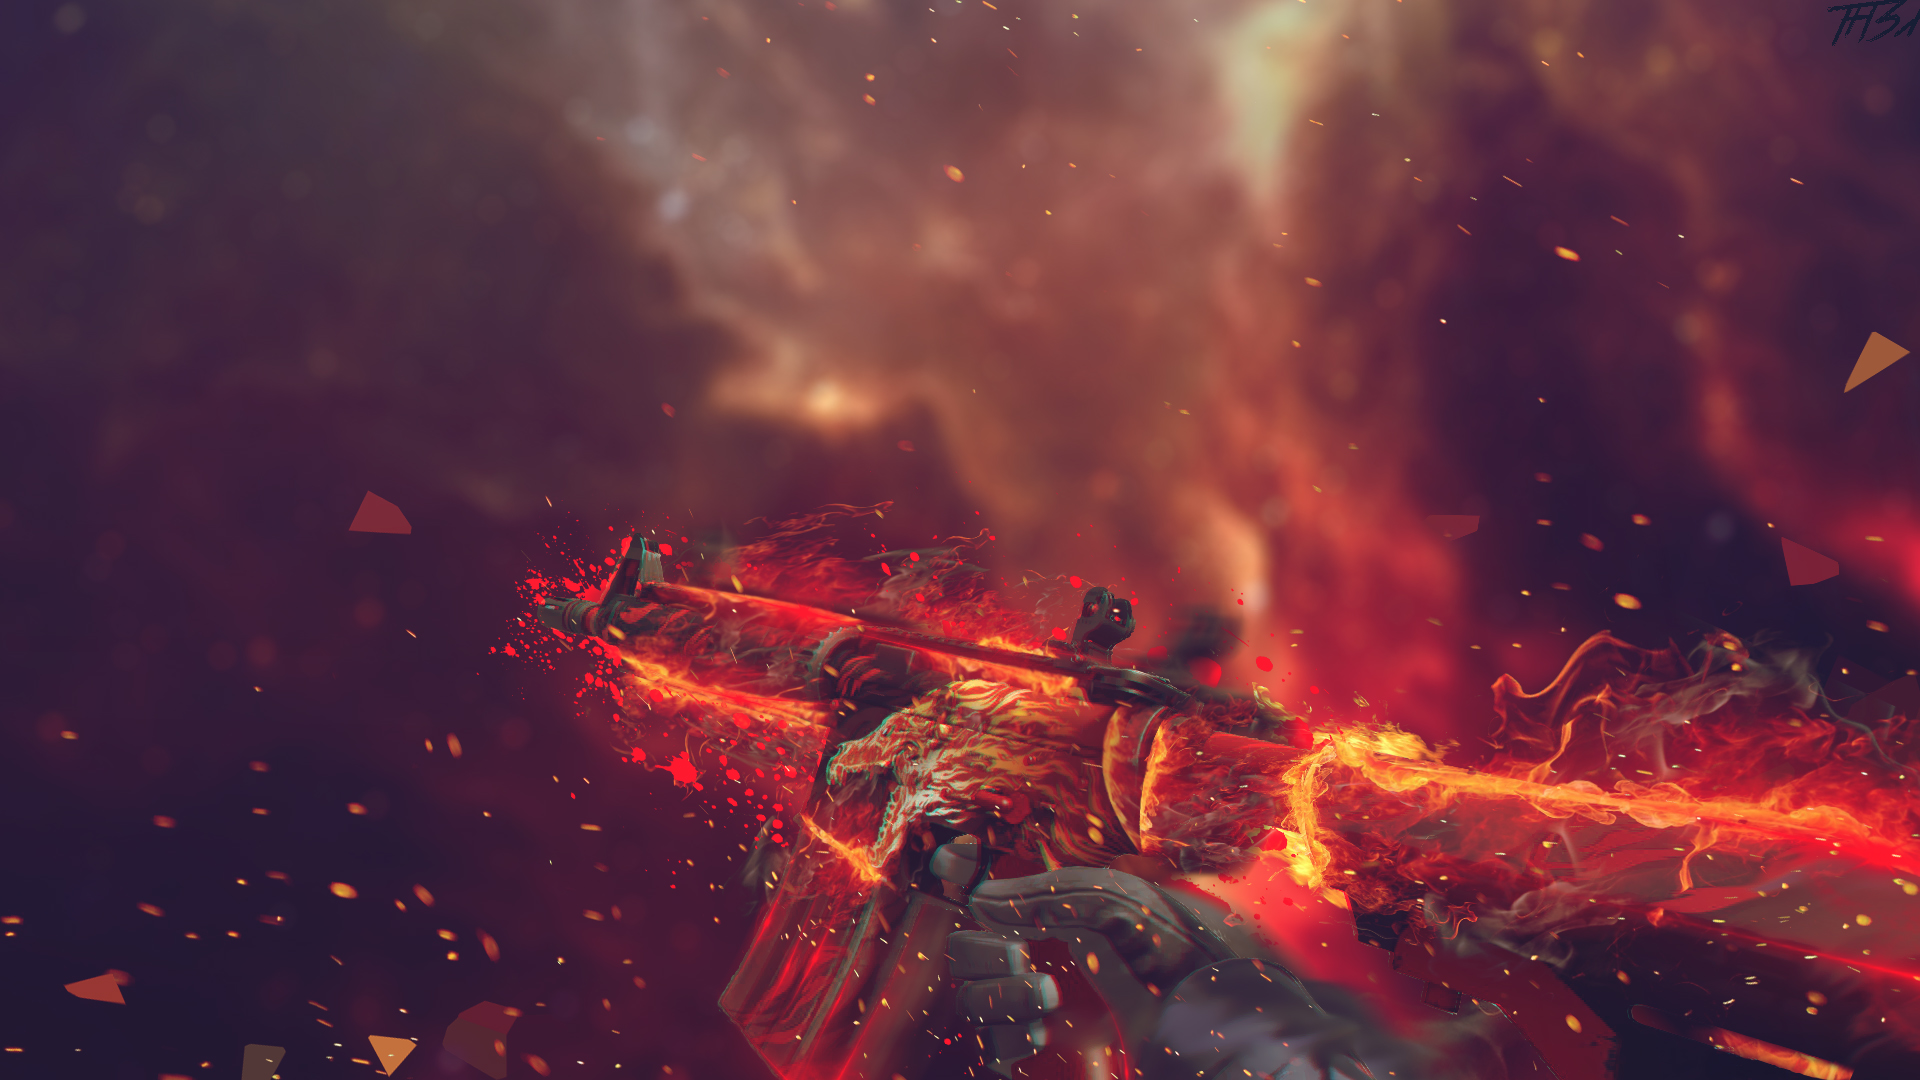 M4A4   Howl HD Wallpaper Background Image 1920x1080 ID 1920x1080